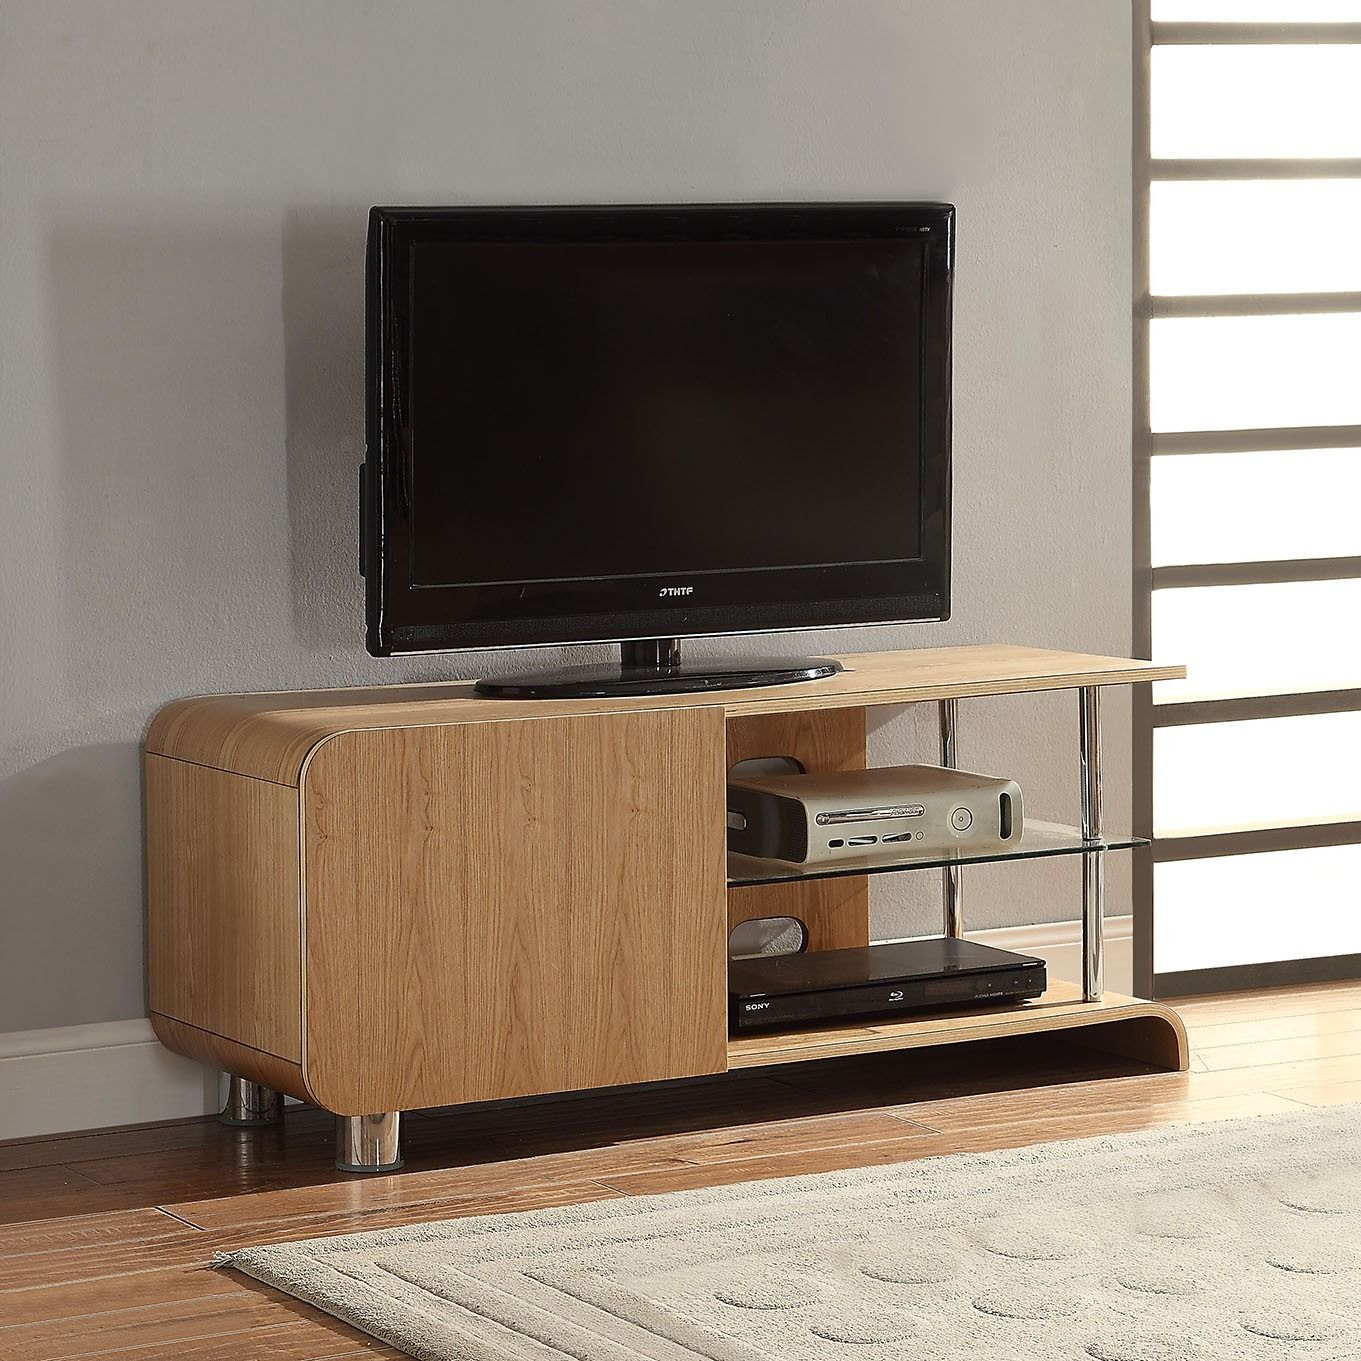 """Jual Furnishings Bs202 Ash Tv Stand For Up To 55"""" Tvs With Regard To Baba Tv Stands For Tvs Up To 55"""" (View 2 of 15)"""